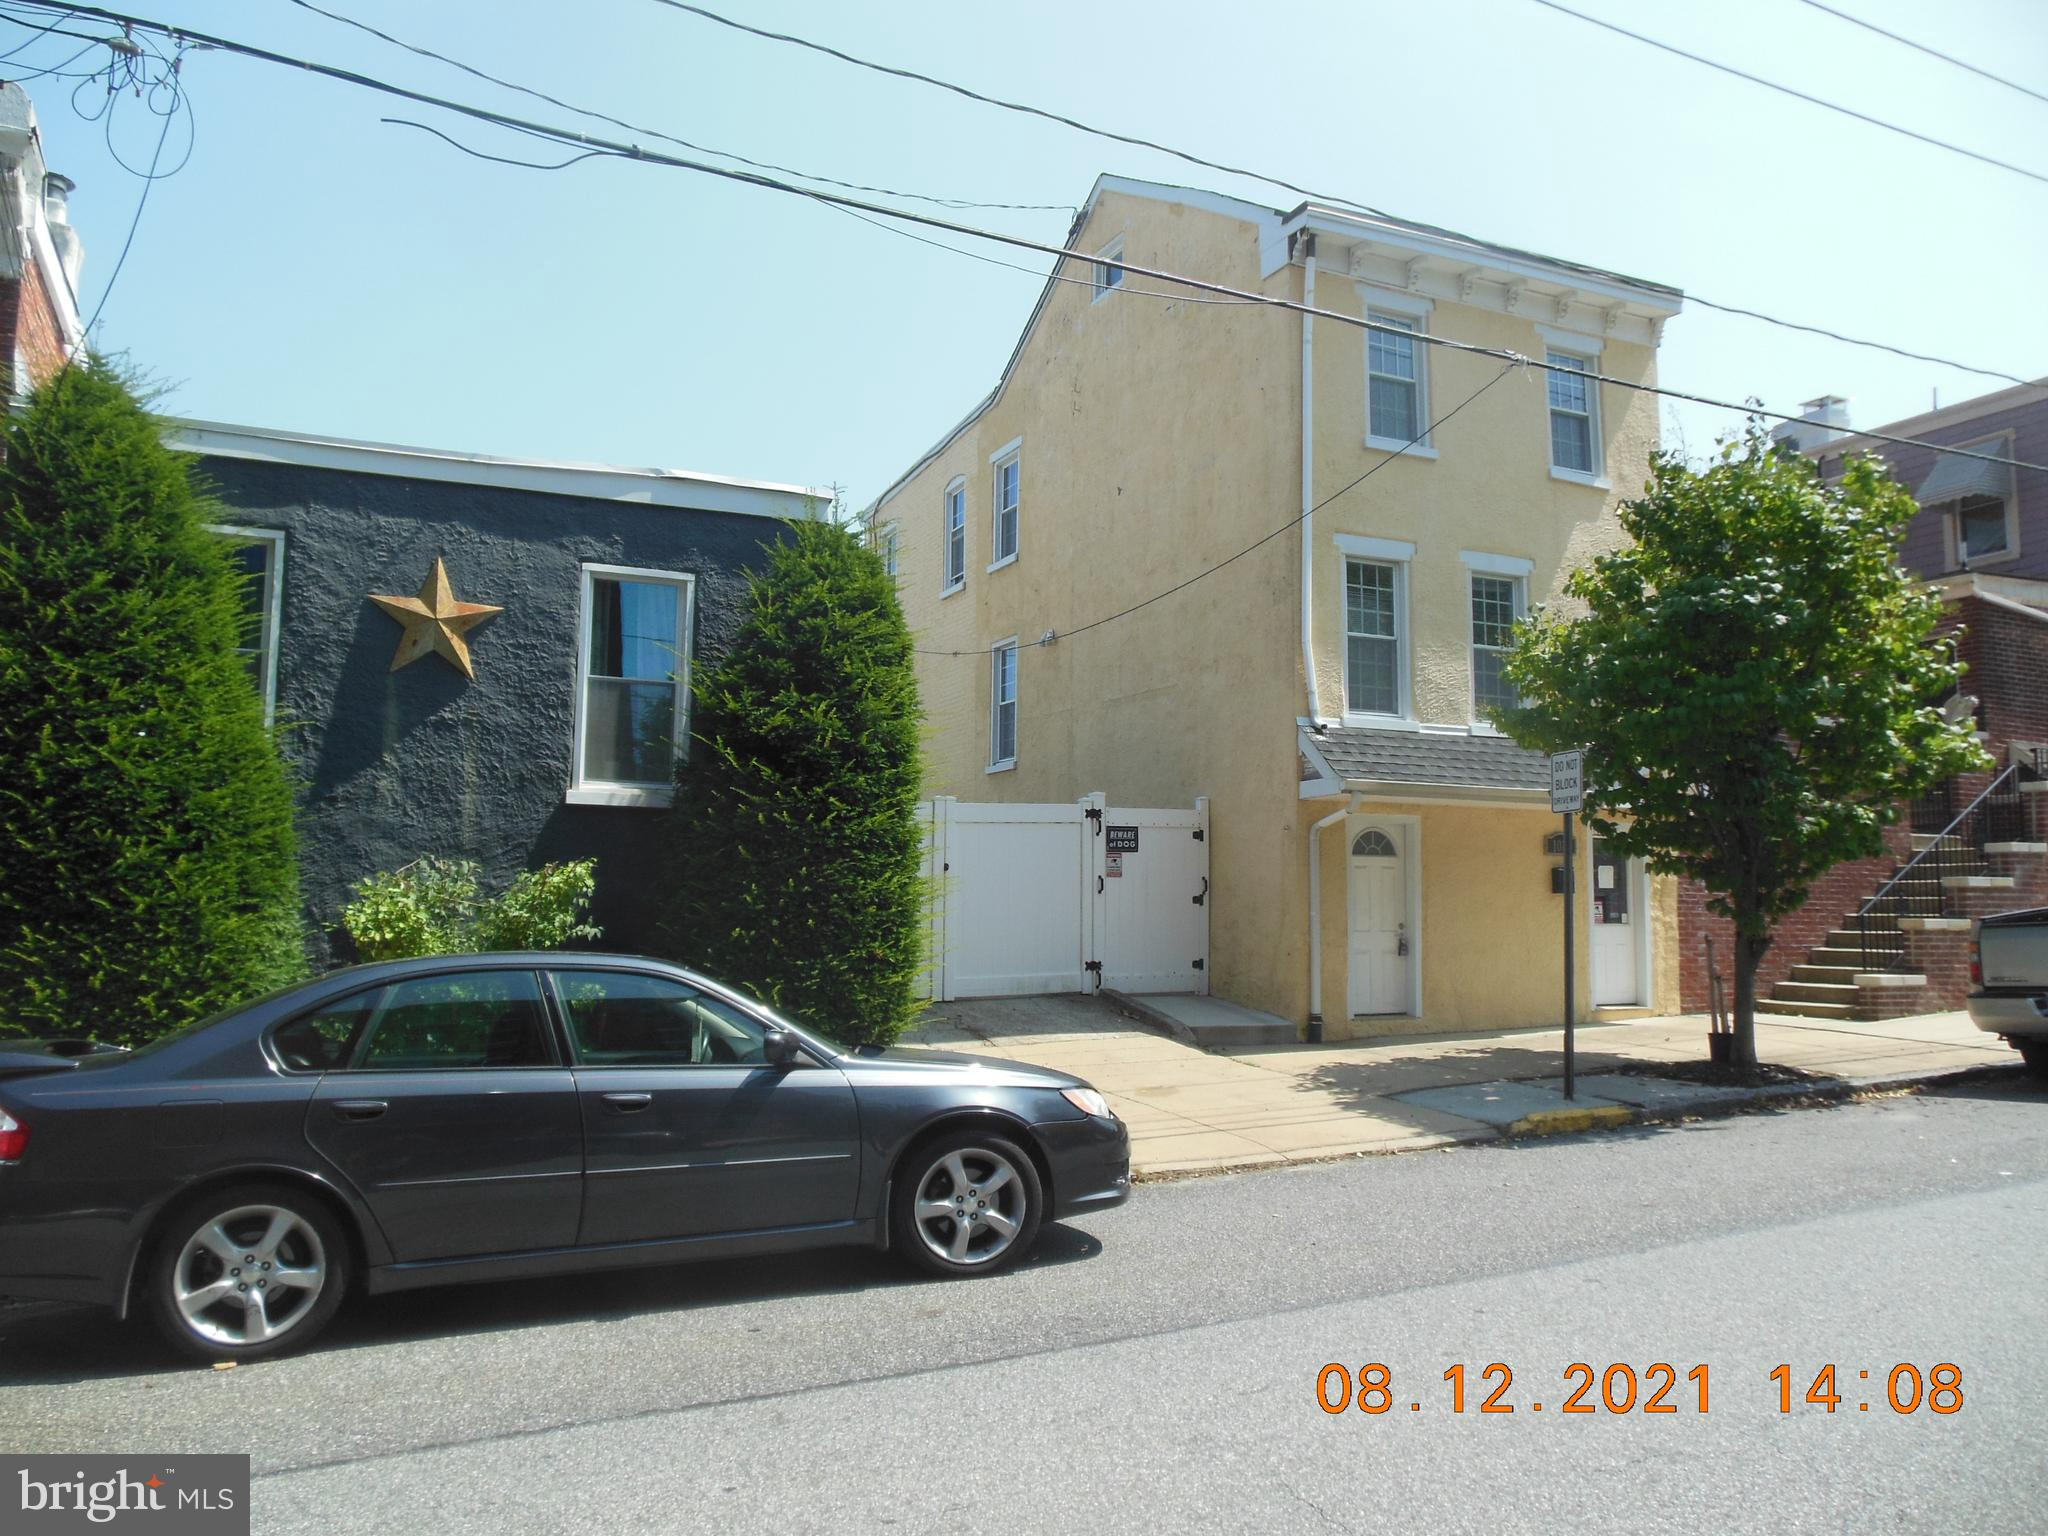 A true Wilmington gem in Little Italy! Check out this one of a kind private oasis completely fenced in. This awesome property has a 3 CAR PLUS PRIVATE DRIVEWAY.  Walk to the best restaurants and bars in Reference MLS # DENC 2000597.   Wilmington's Trolley Square. You also have a front row seat to the St. Anthony's Italian Festival. The main house has 3 bedrooms and 1.5 Baths, (finished basement, approx. 400 sq. ft.), Upper level has wood floors and the whole house was completely renovated in 2010. Newer appliances  and a new dishwasher. The whole house has been freshly painted. Have summer barbQ's  in the private backyard that has a stone patio, fruit trees and other colorful seasonal blooms.  And if that wasn't enough, there is a 400 + SQ. FT.  SEPARATE BUILDING on the property that the current owner used as an office for a small business remodeled 8 years ago and complete with heat, air and powder room. Use it as a BUSINESS to generate INCOME or turn it  into an IN-LAW SUITE, GAME ROOM or GUEST COTTAGE! POSSIBLE  LOT SUB-DIVISION?! You will not want to miss this property! All appliances included in sale.